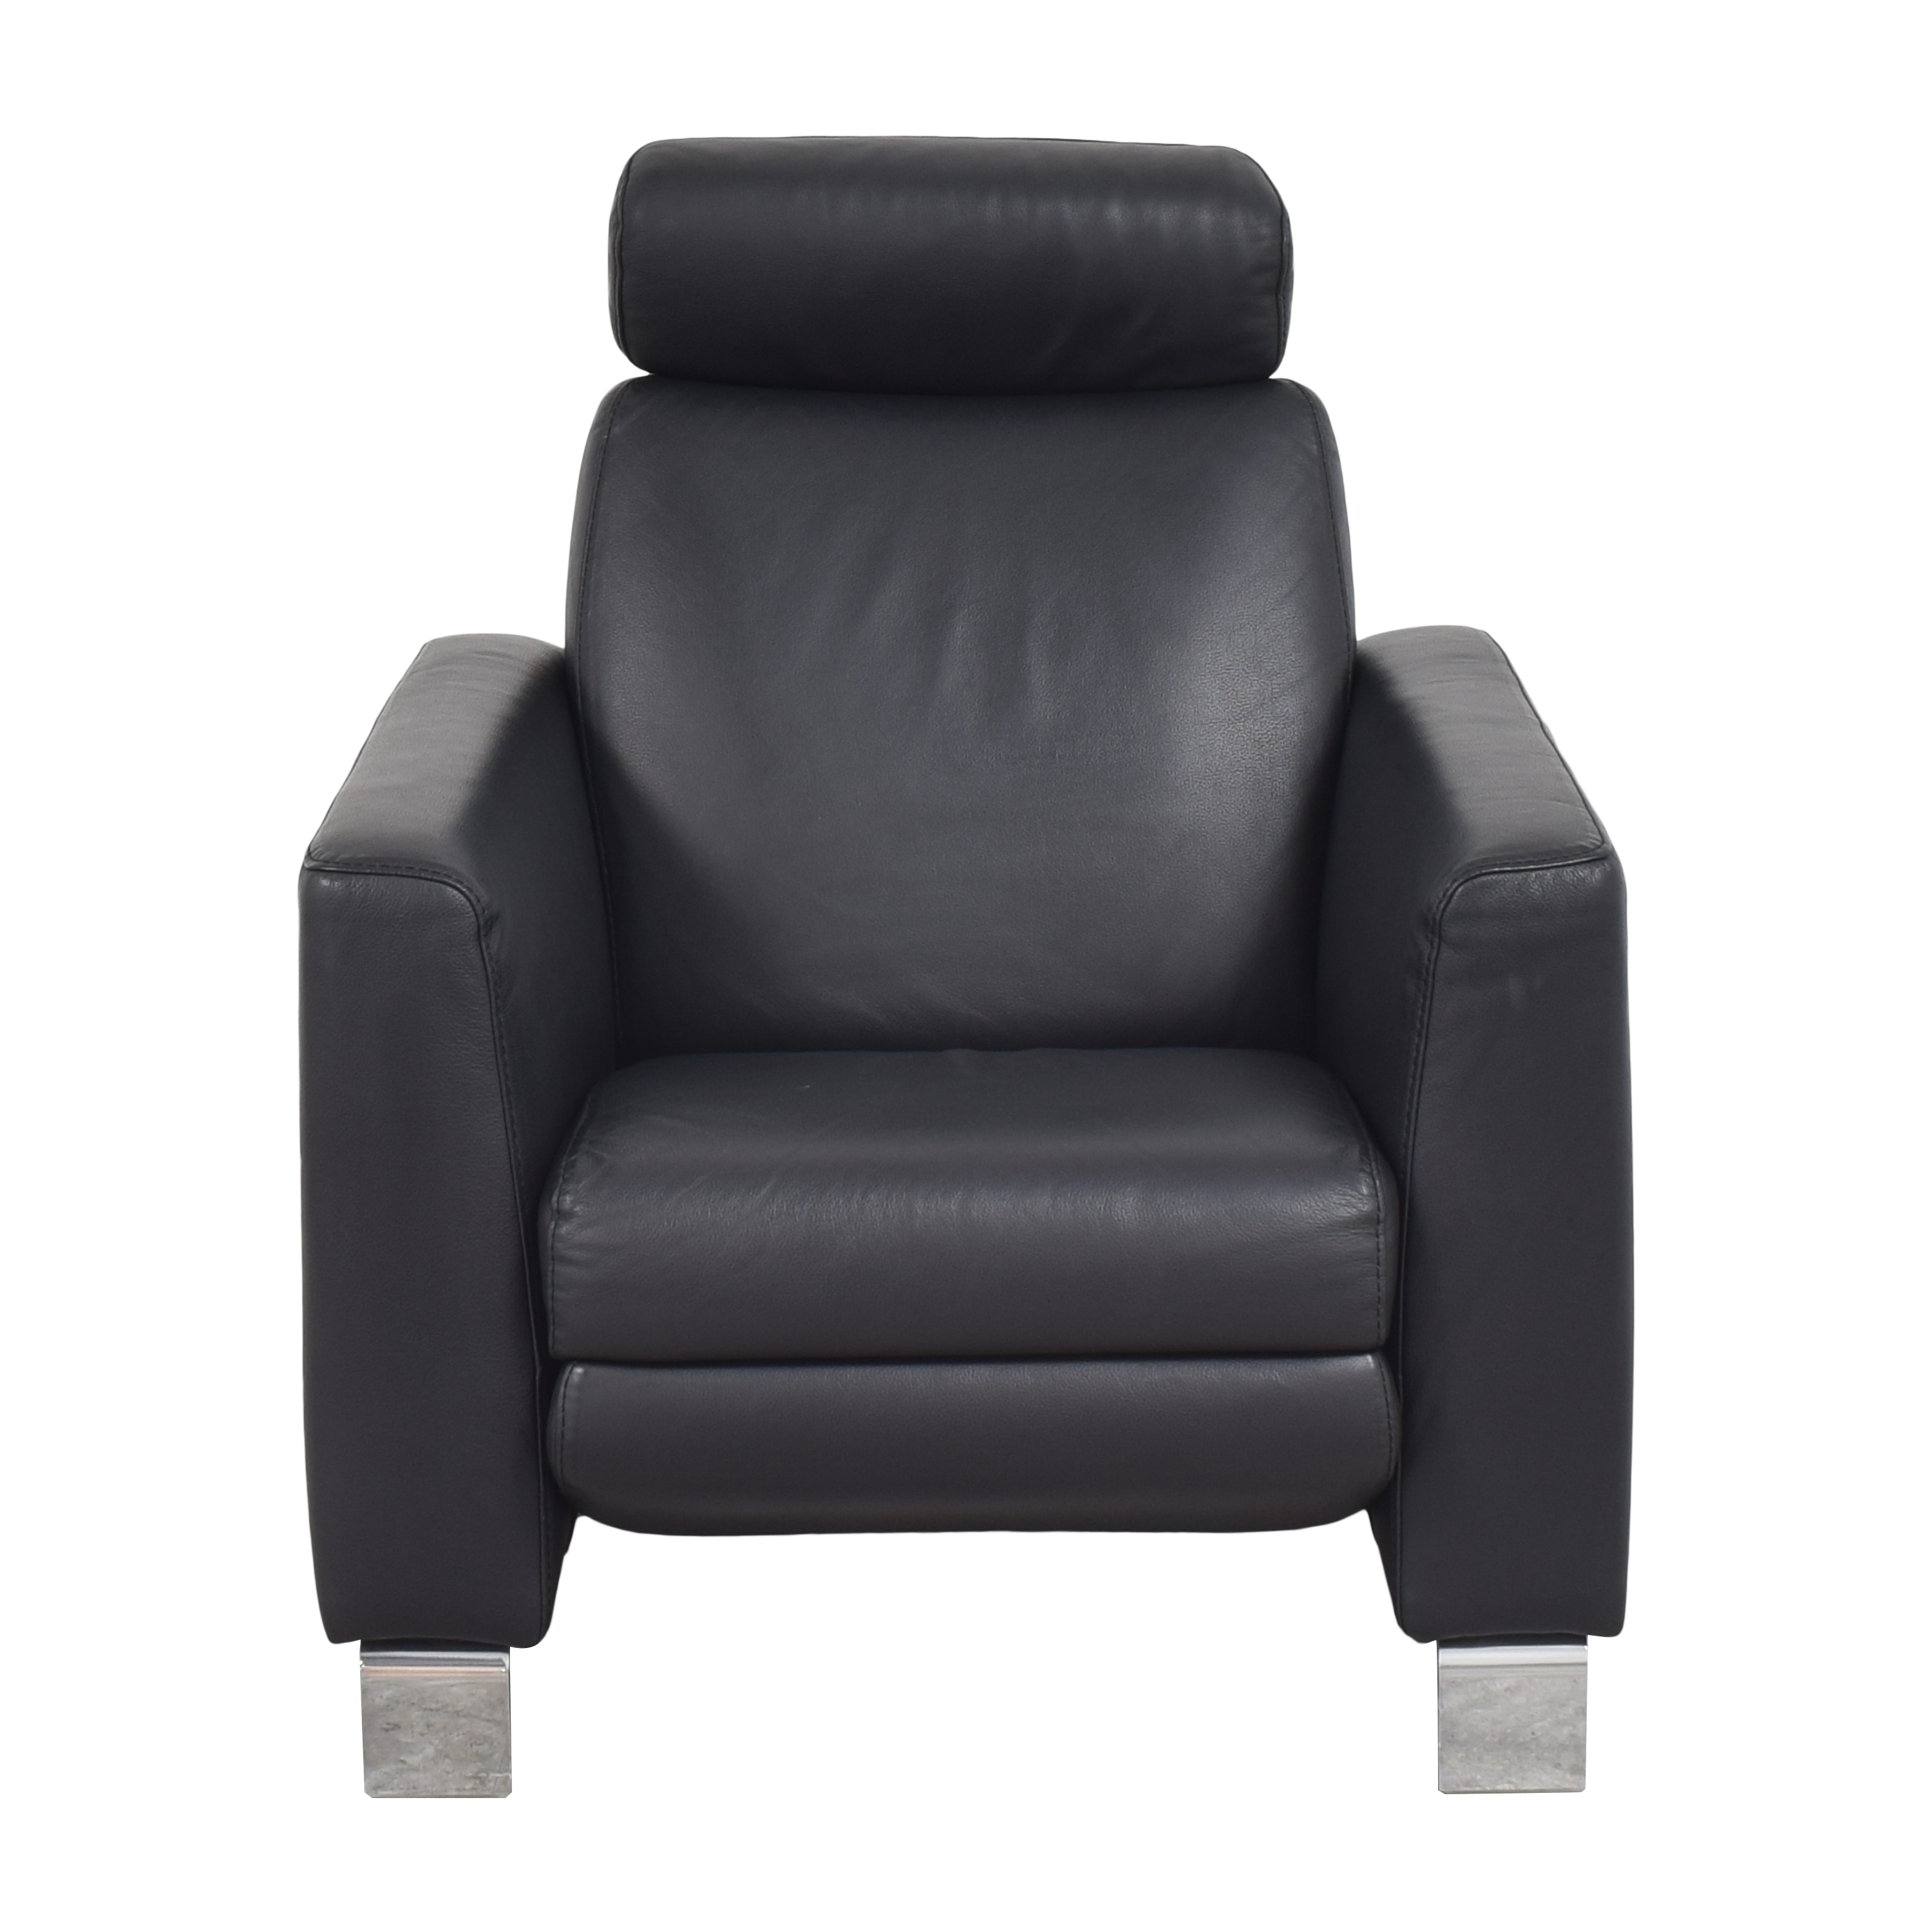 Modern Reclining Armchair black and silver